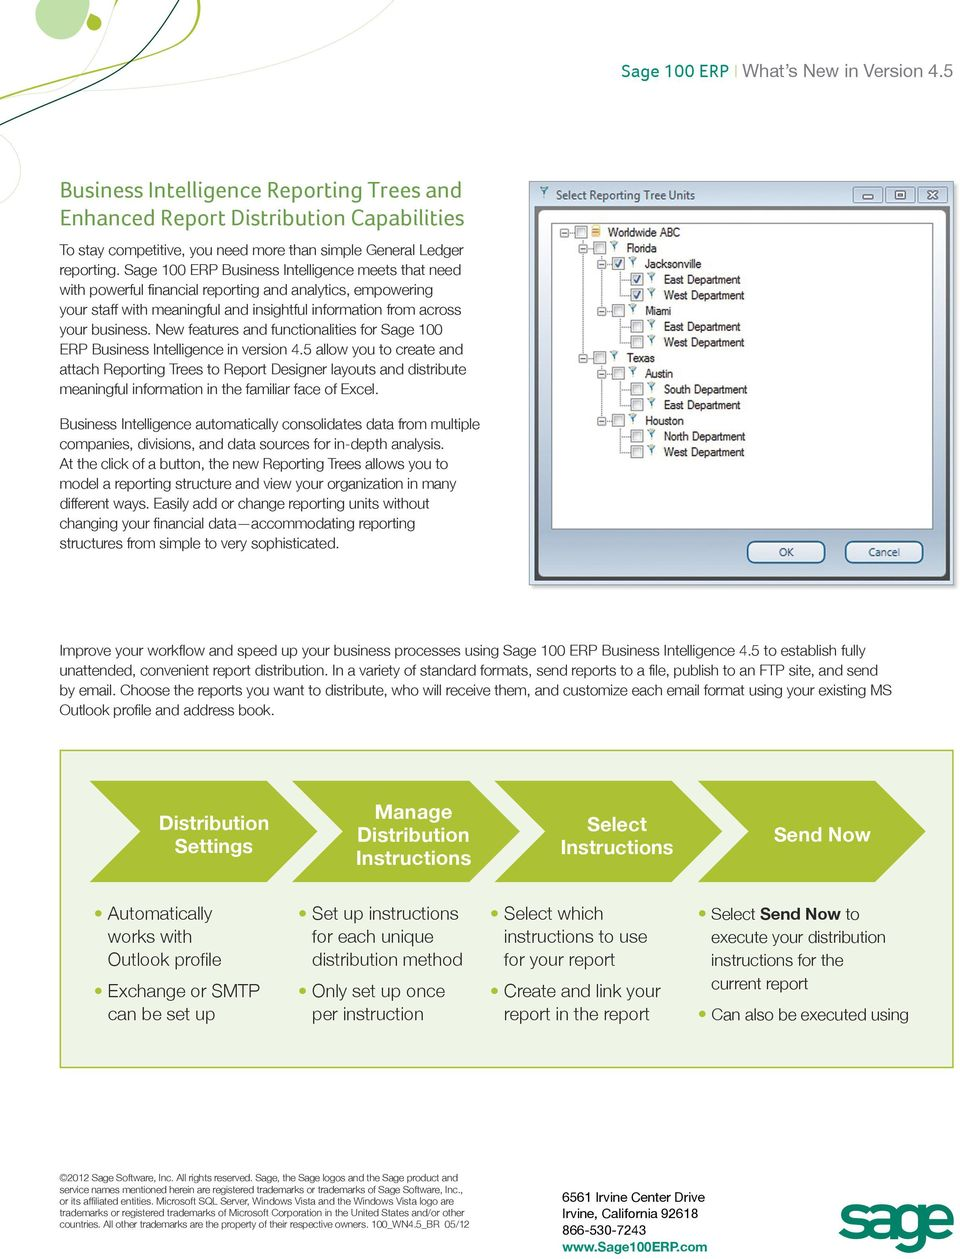 New features and functionalities for Sage 100 ERP Business Intelligence in version 4.